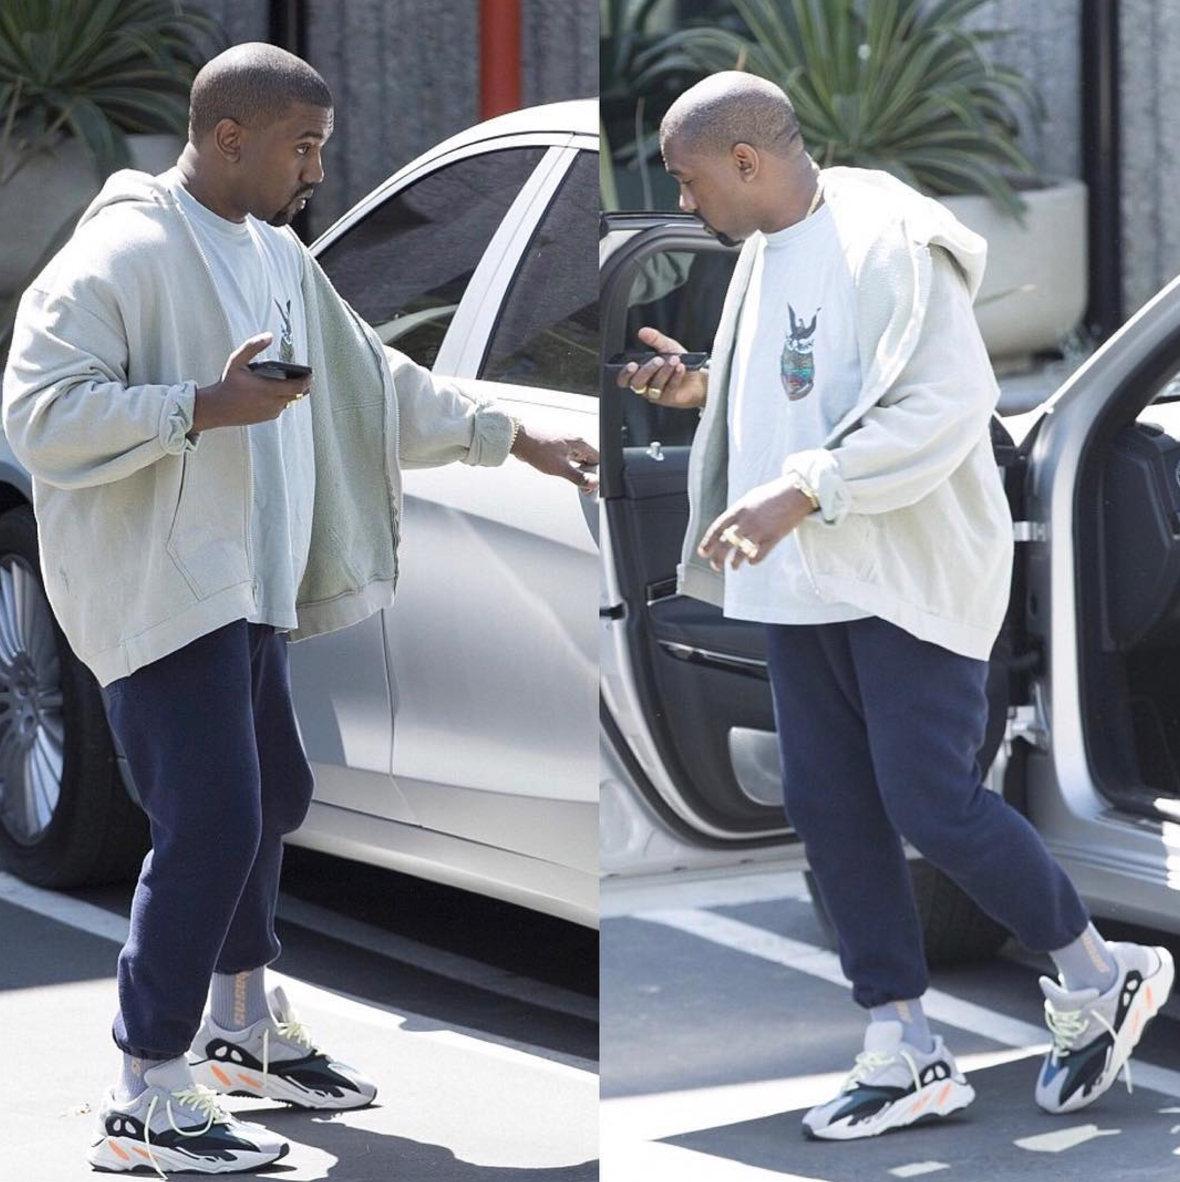 SPOTTED: Kanye West in adidas YEEZY Calabasas T-Shirt, Socks And Wave Runner 700 Sneakers